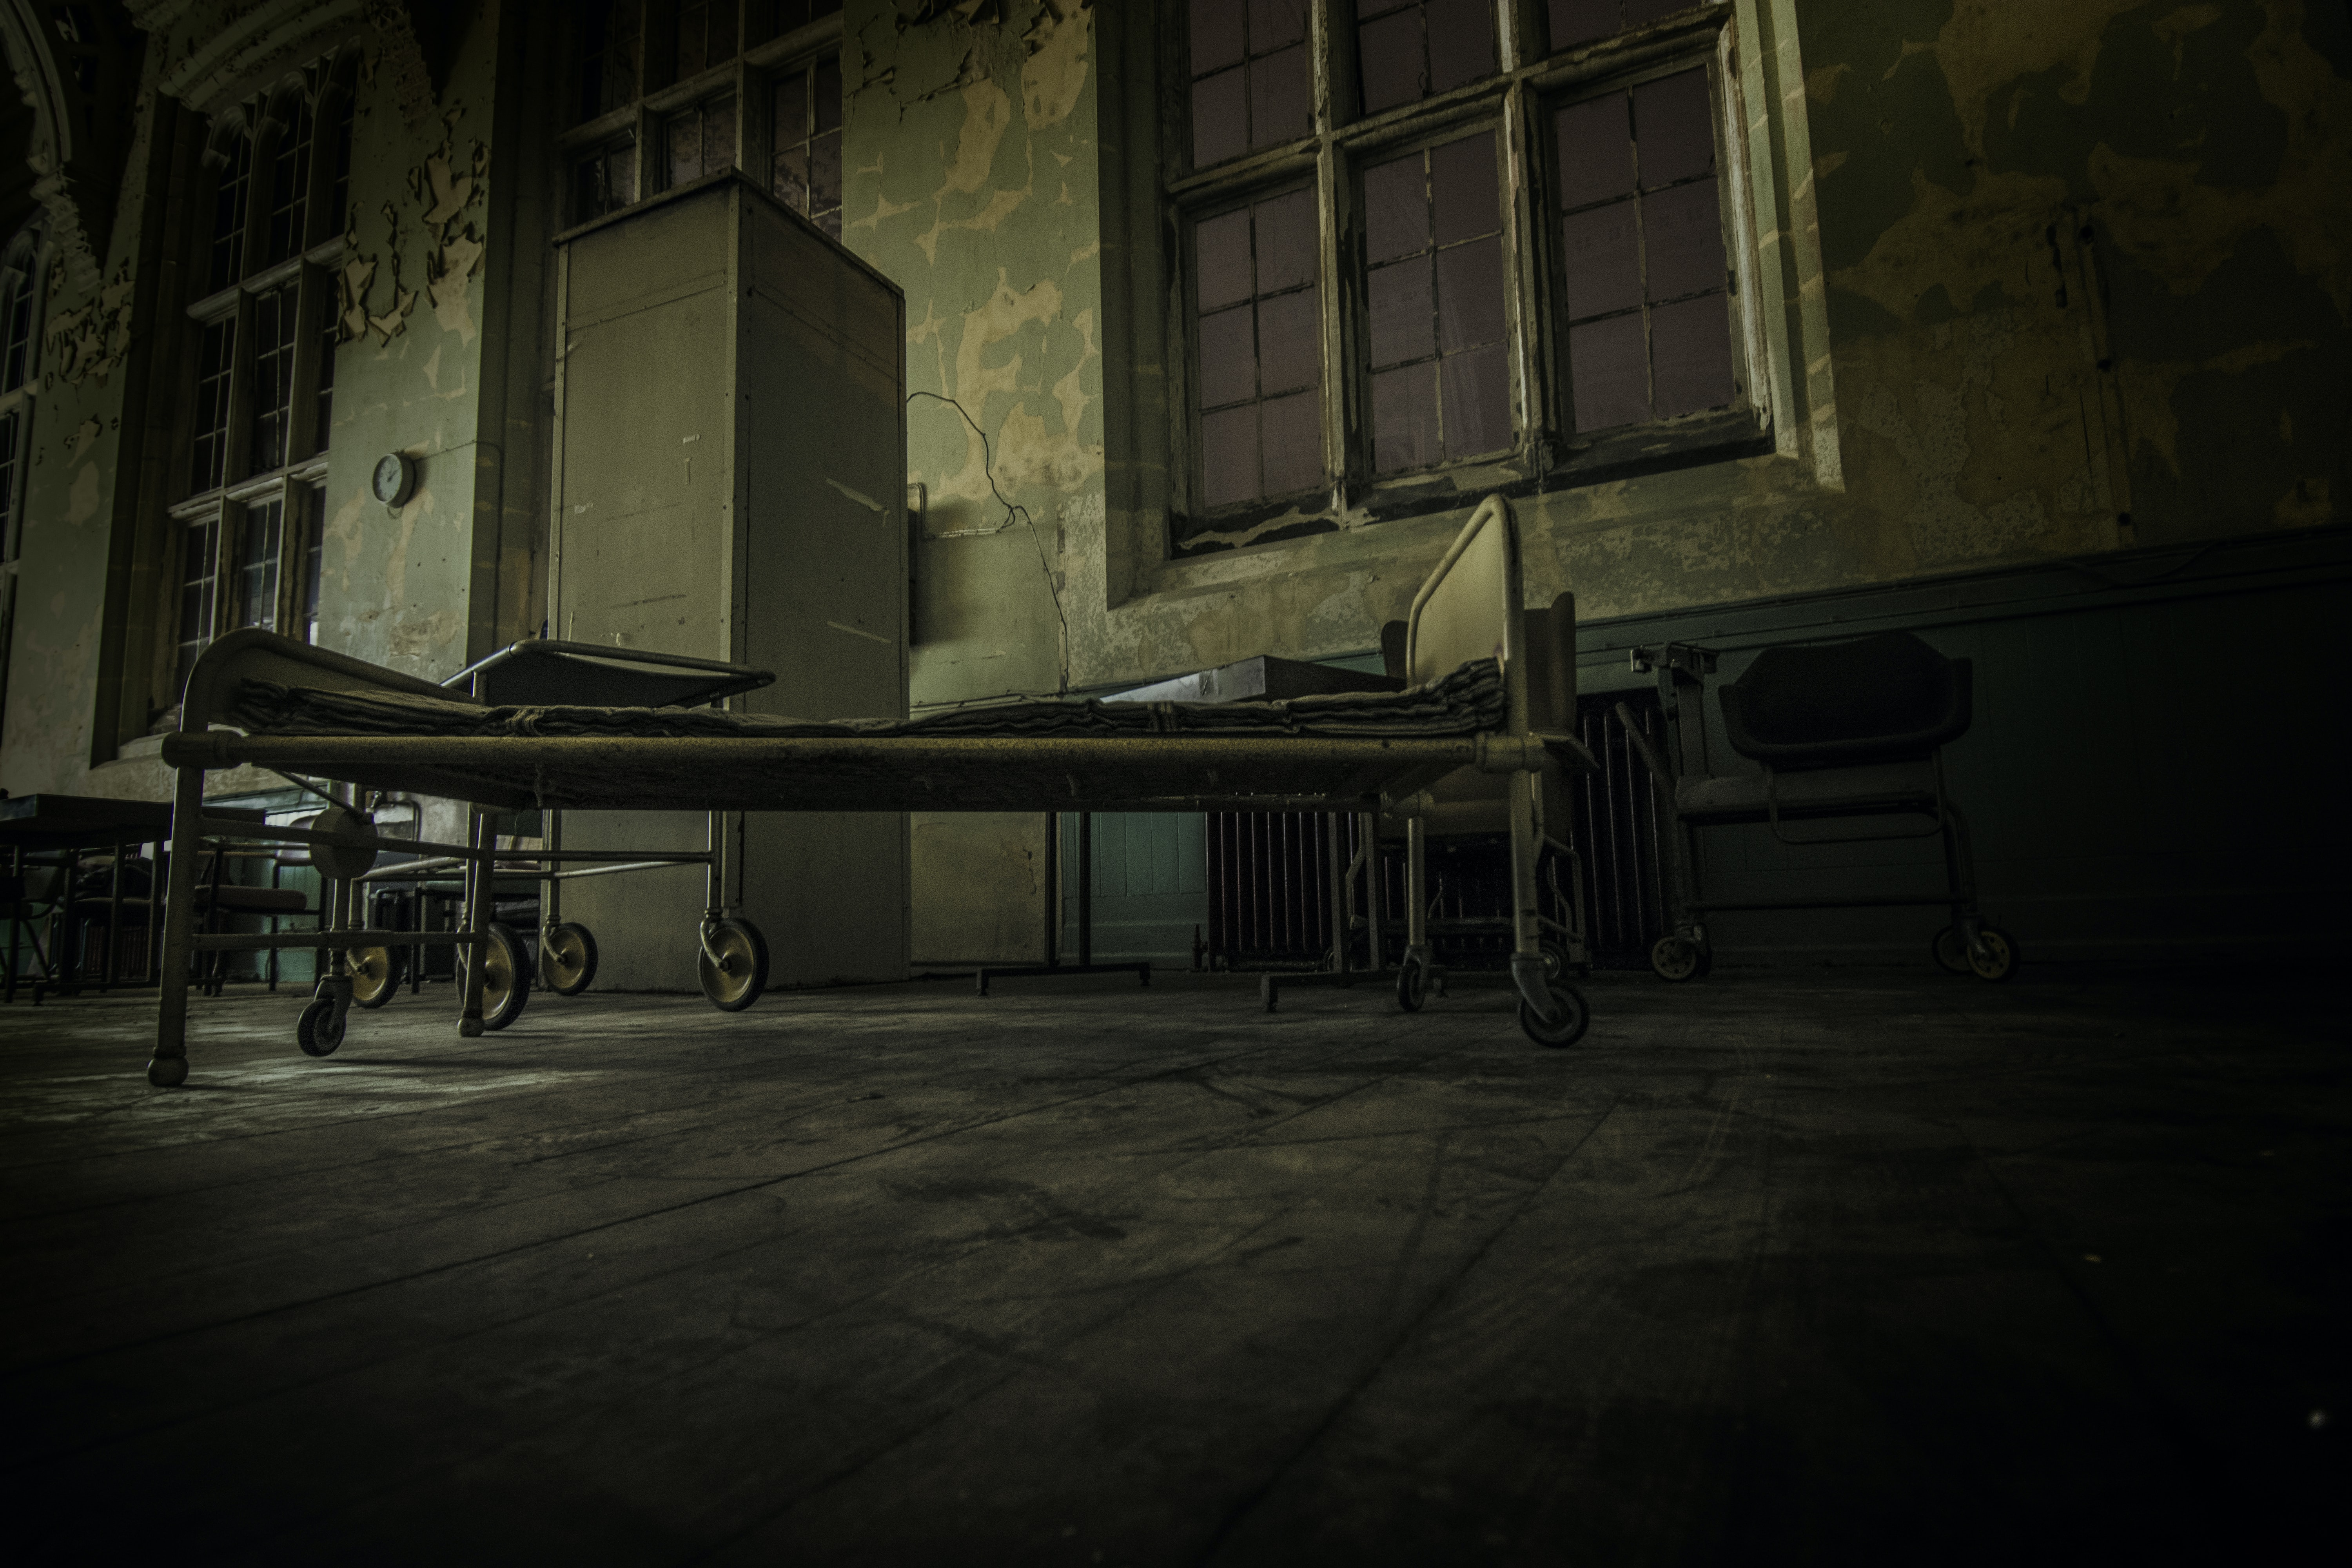 A rundown hospital room with hospital beds and a cabinet in the United Kingdom.